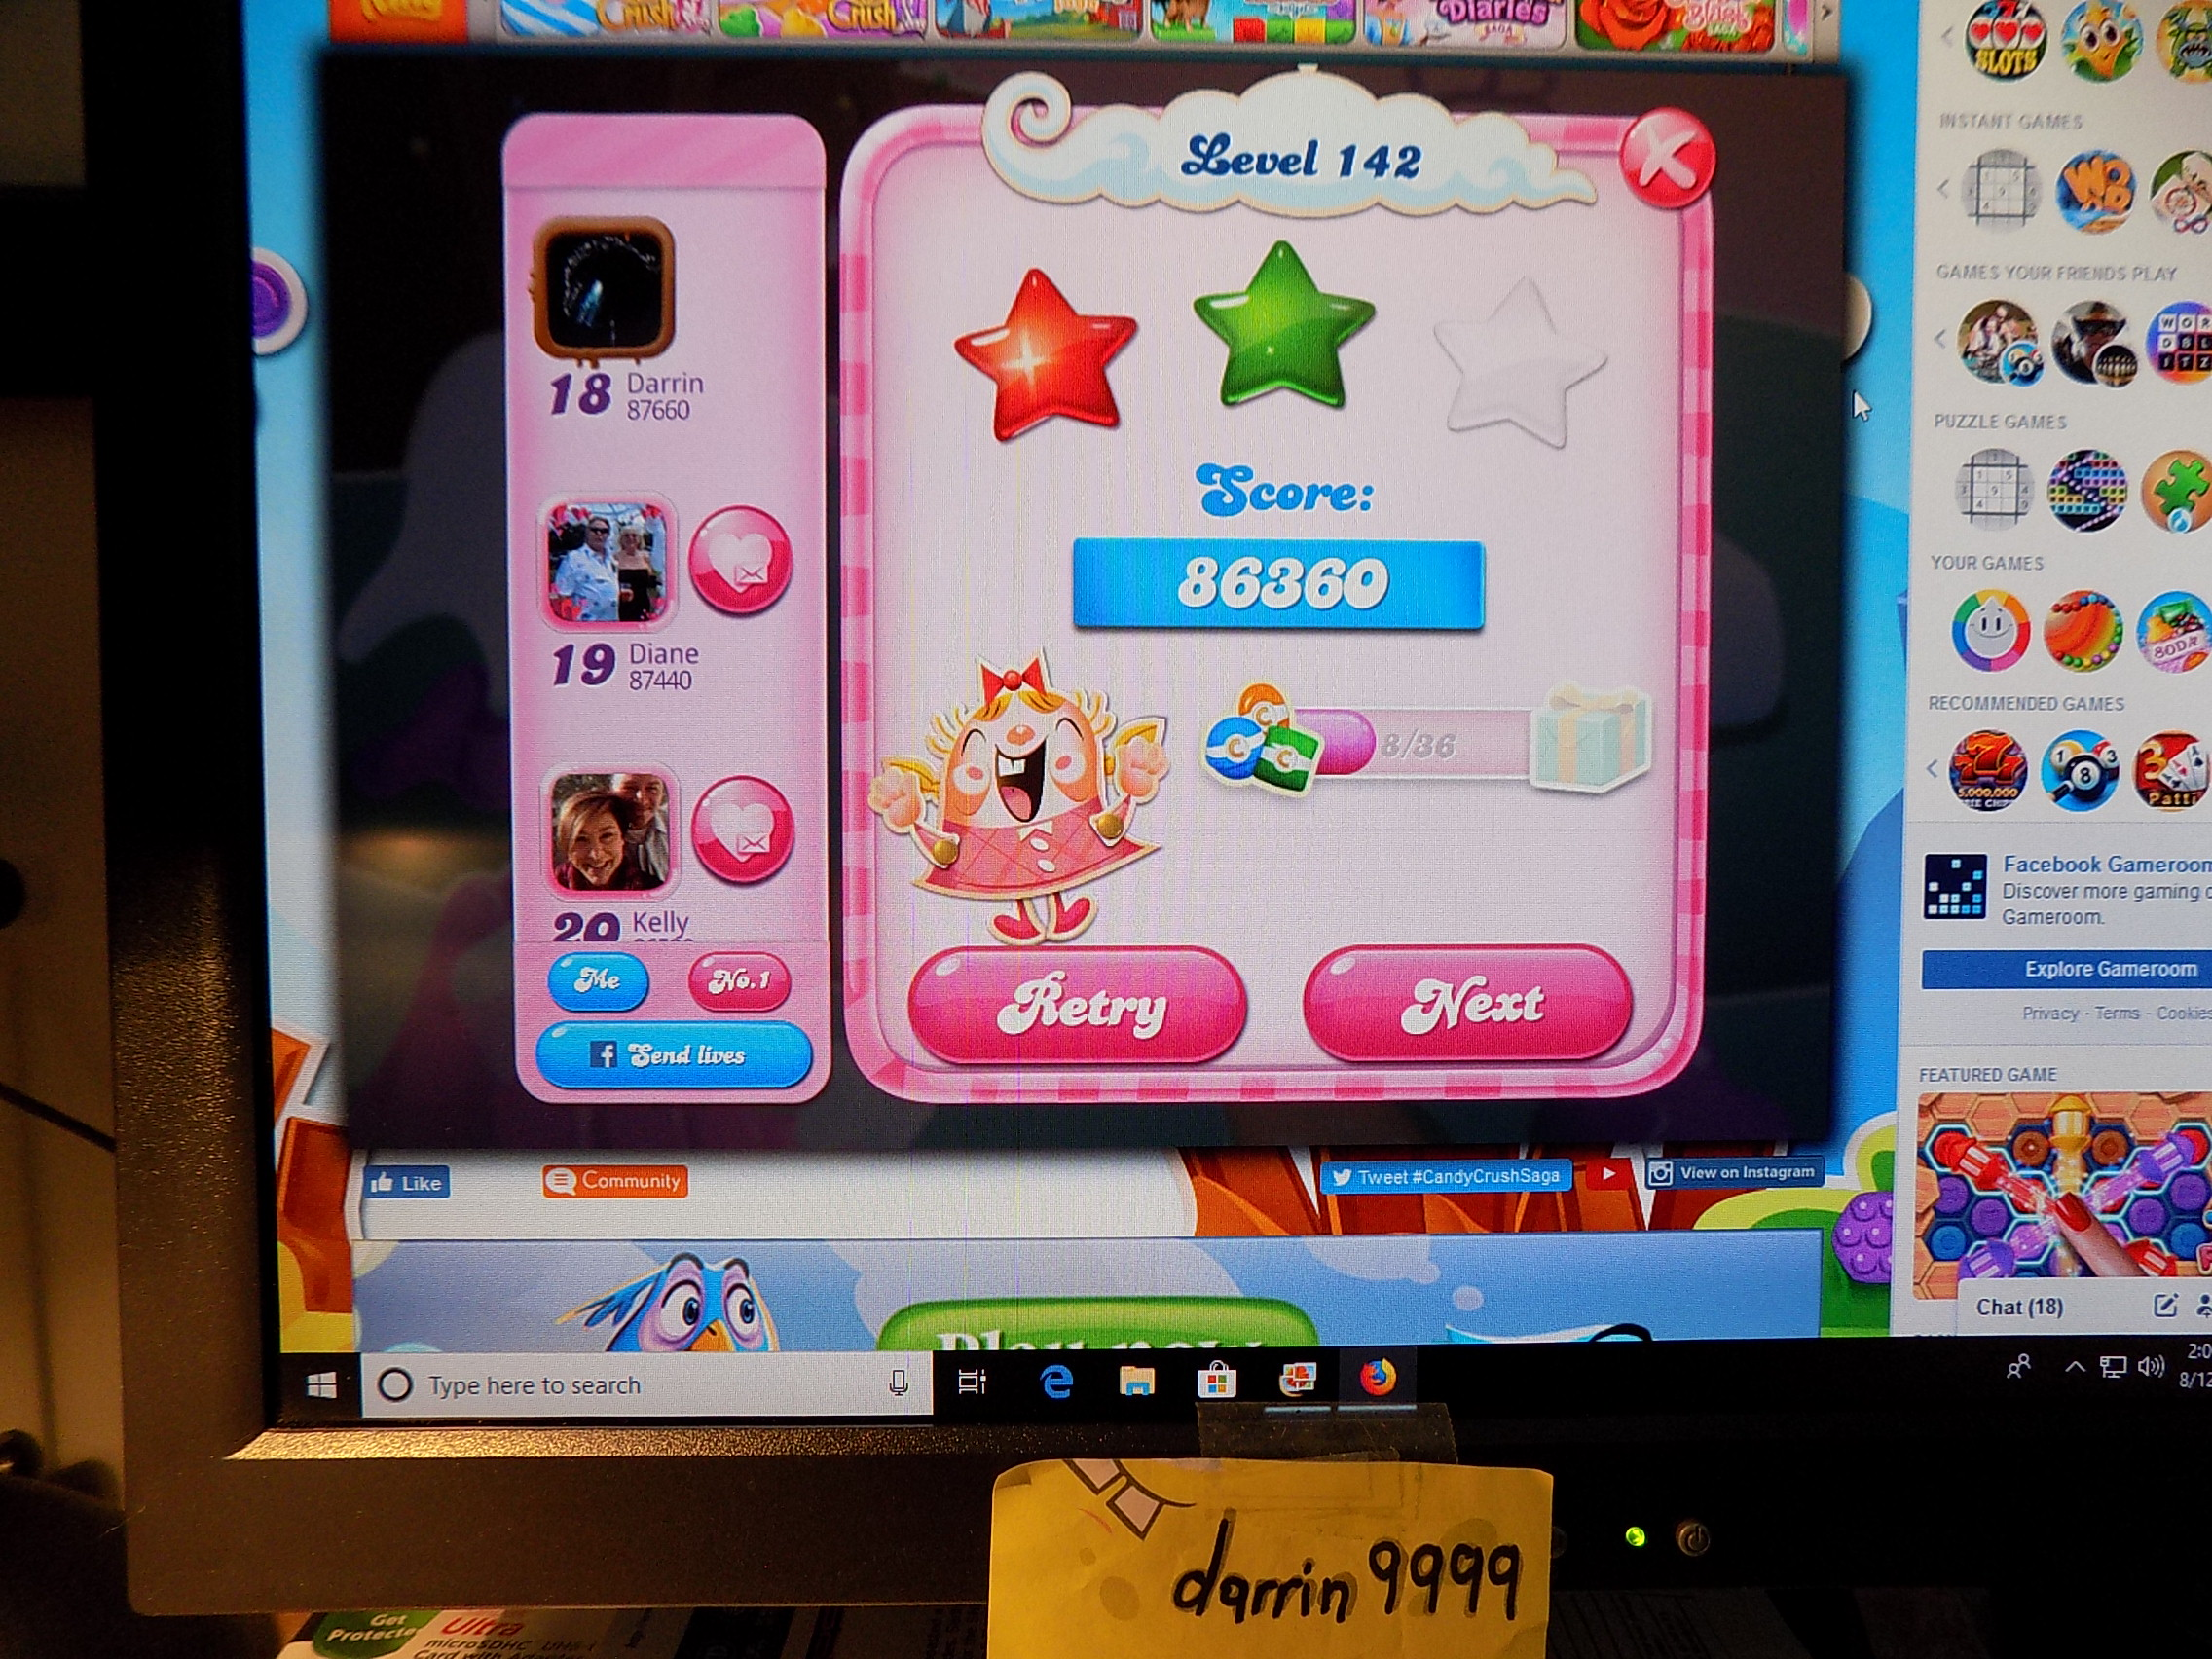 darrin9999: Candy Crush Saga: Level 142 (Web) 86,360 points on 2019-08-19 15:06:29